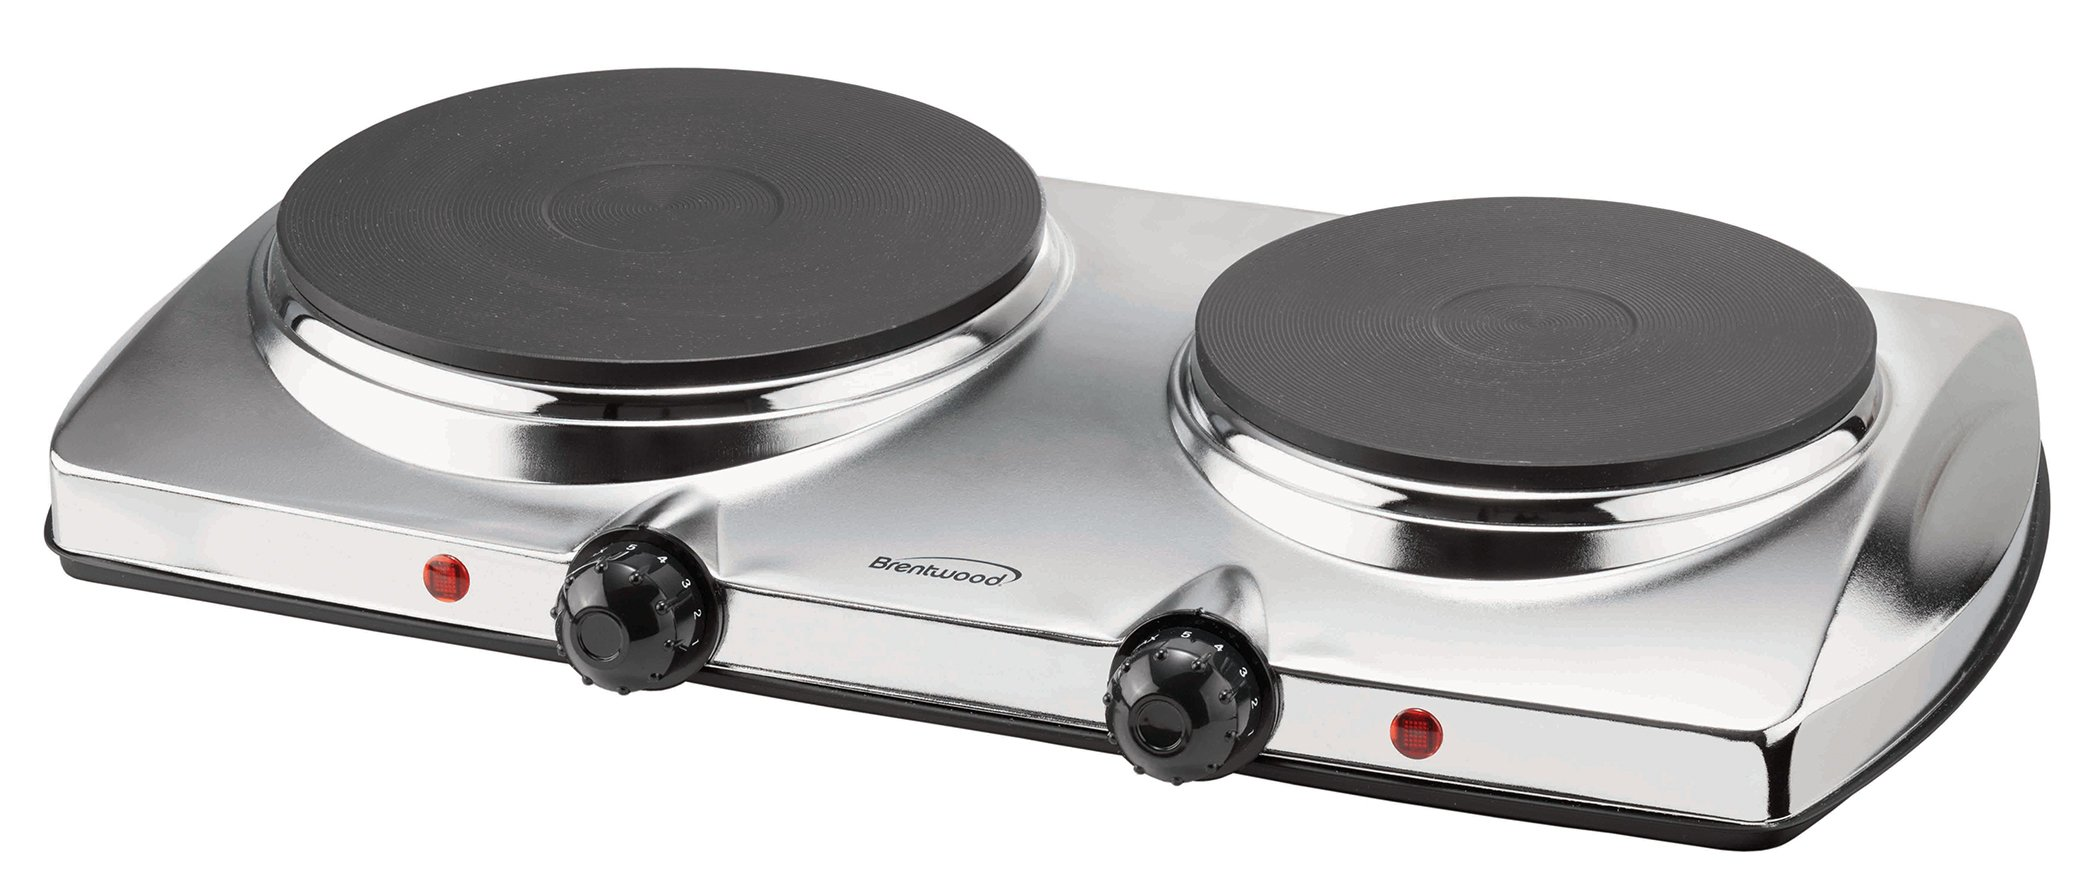 Brentwood TS-372 1440w Double Electric Hotplate, Silver